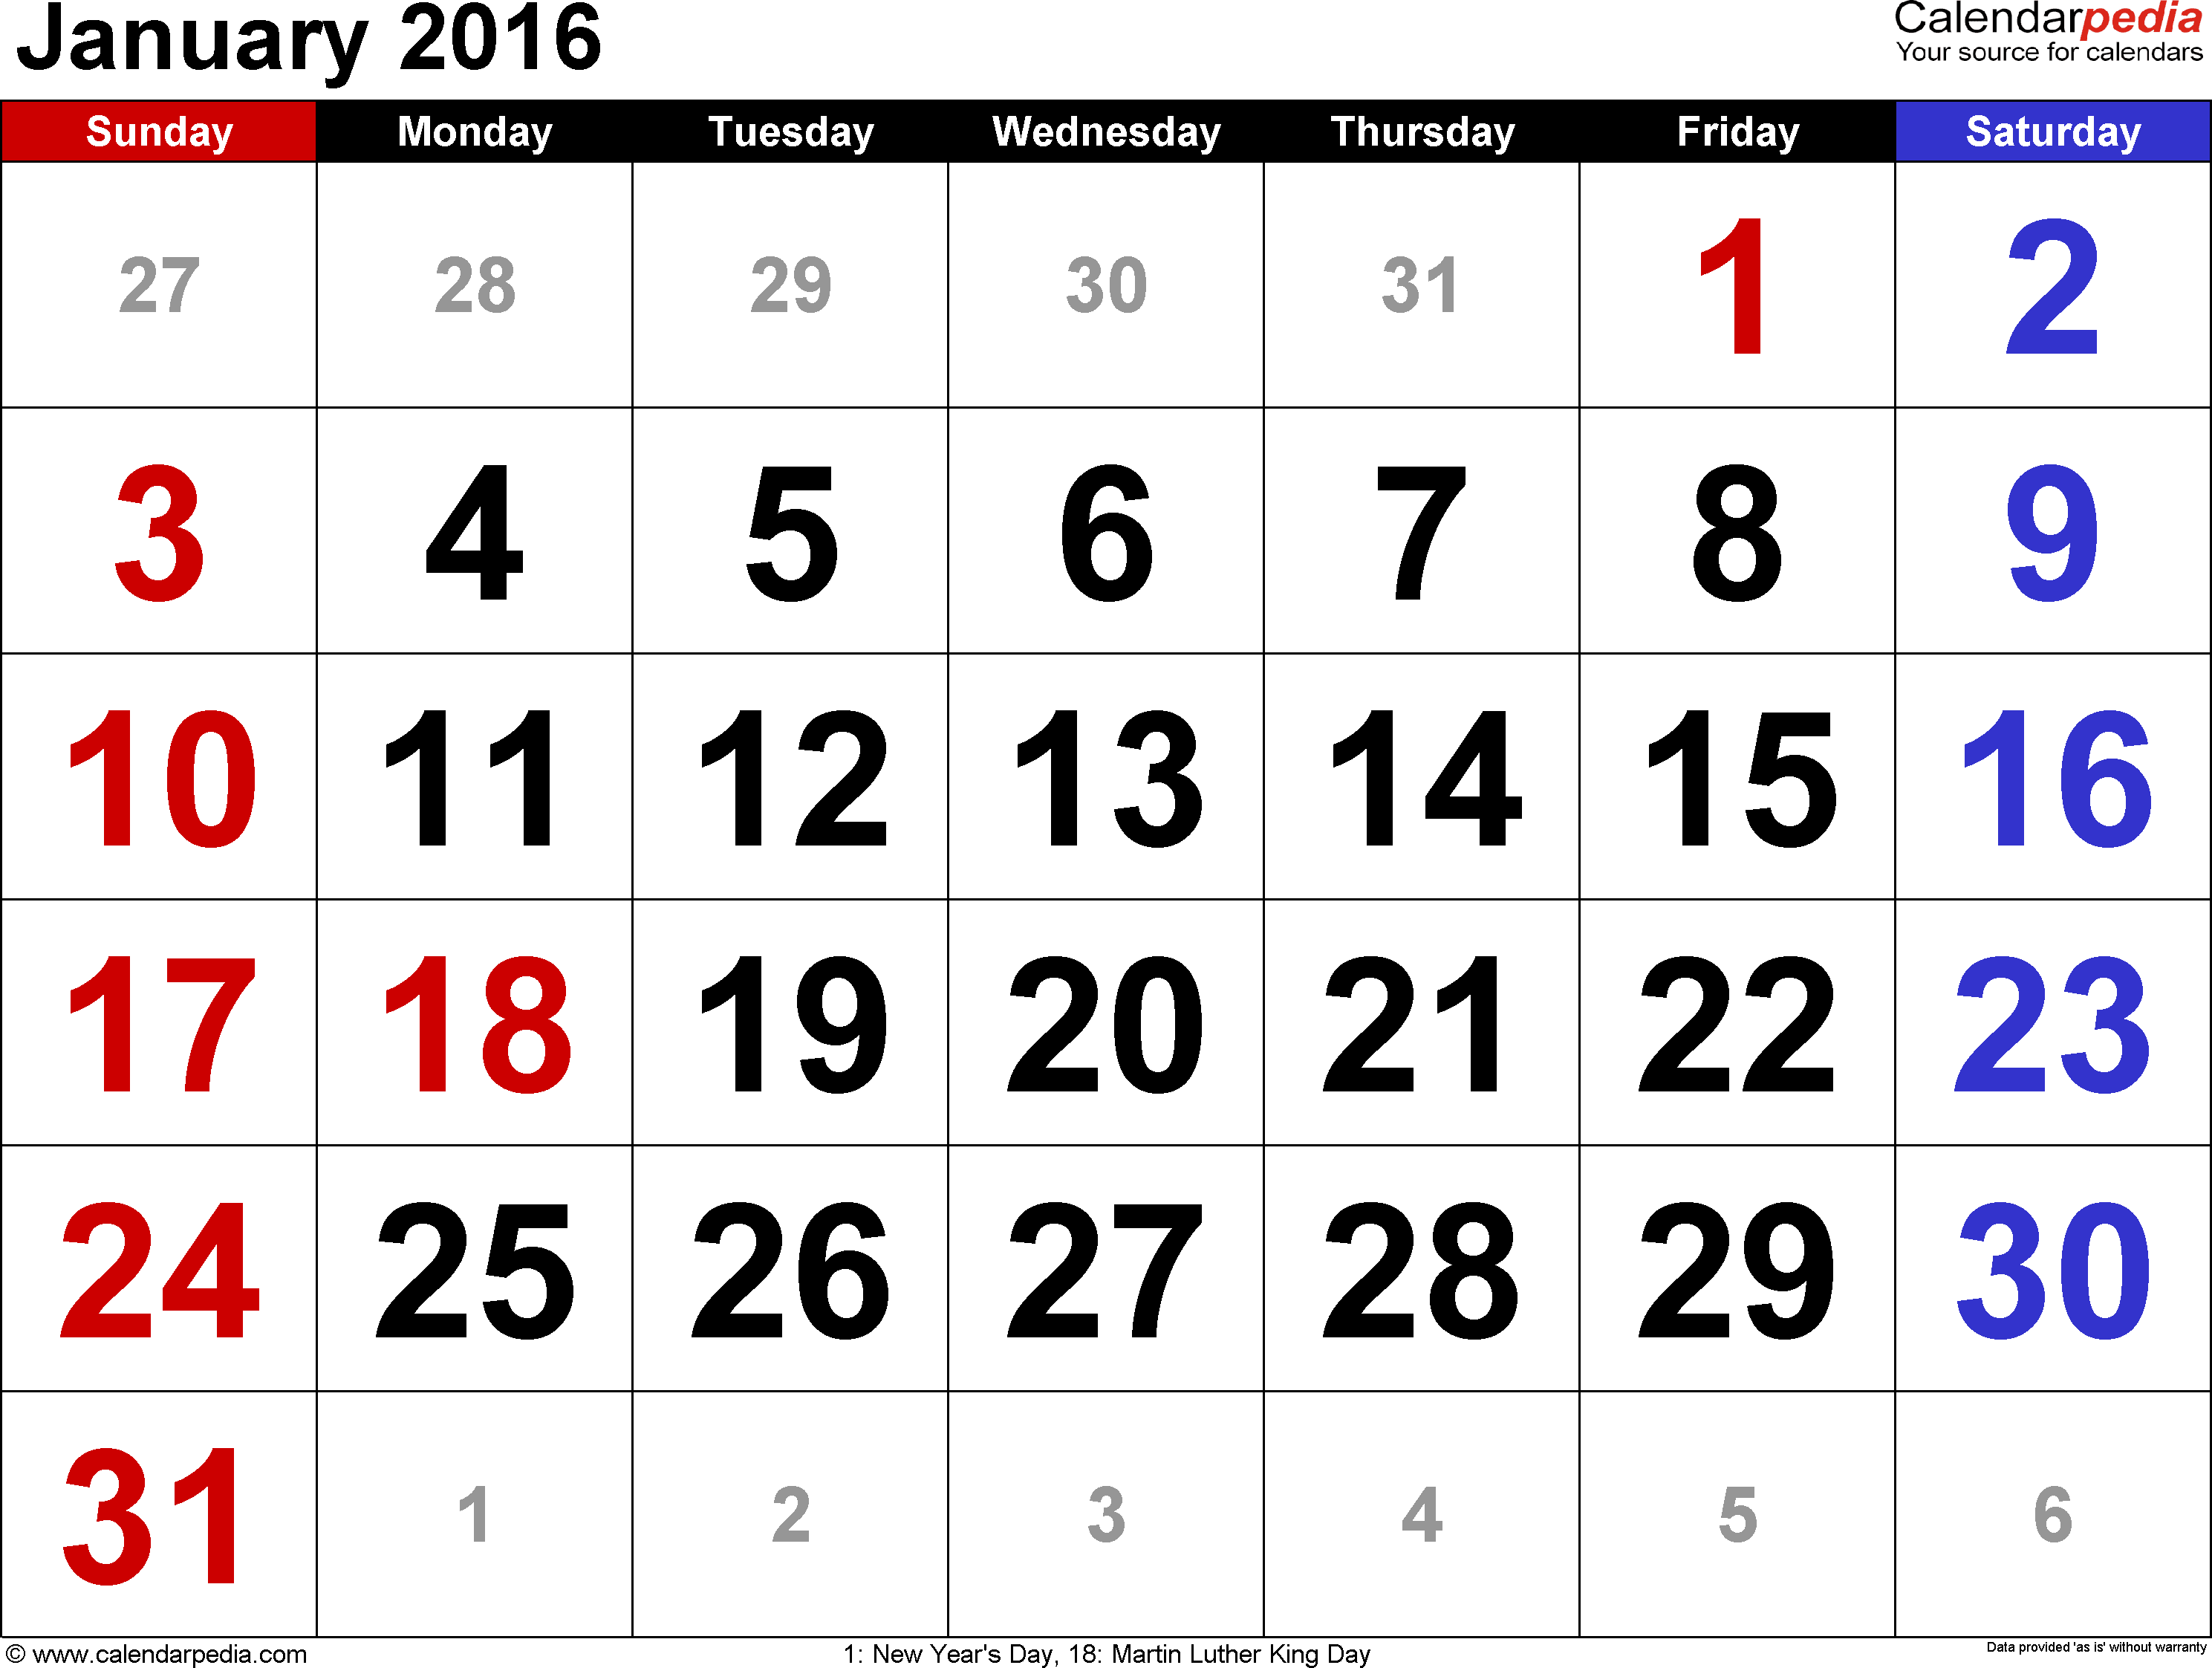 January 2016 calendar, landscape orientation, large numerals, available as printable templates for Word, Excel and PDF